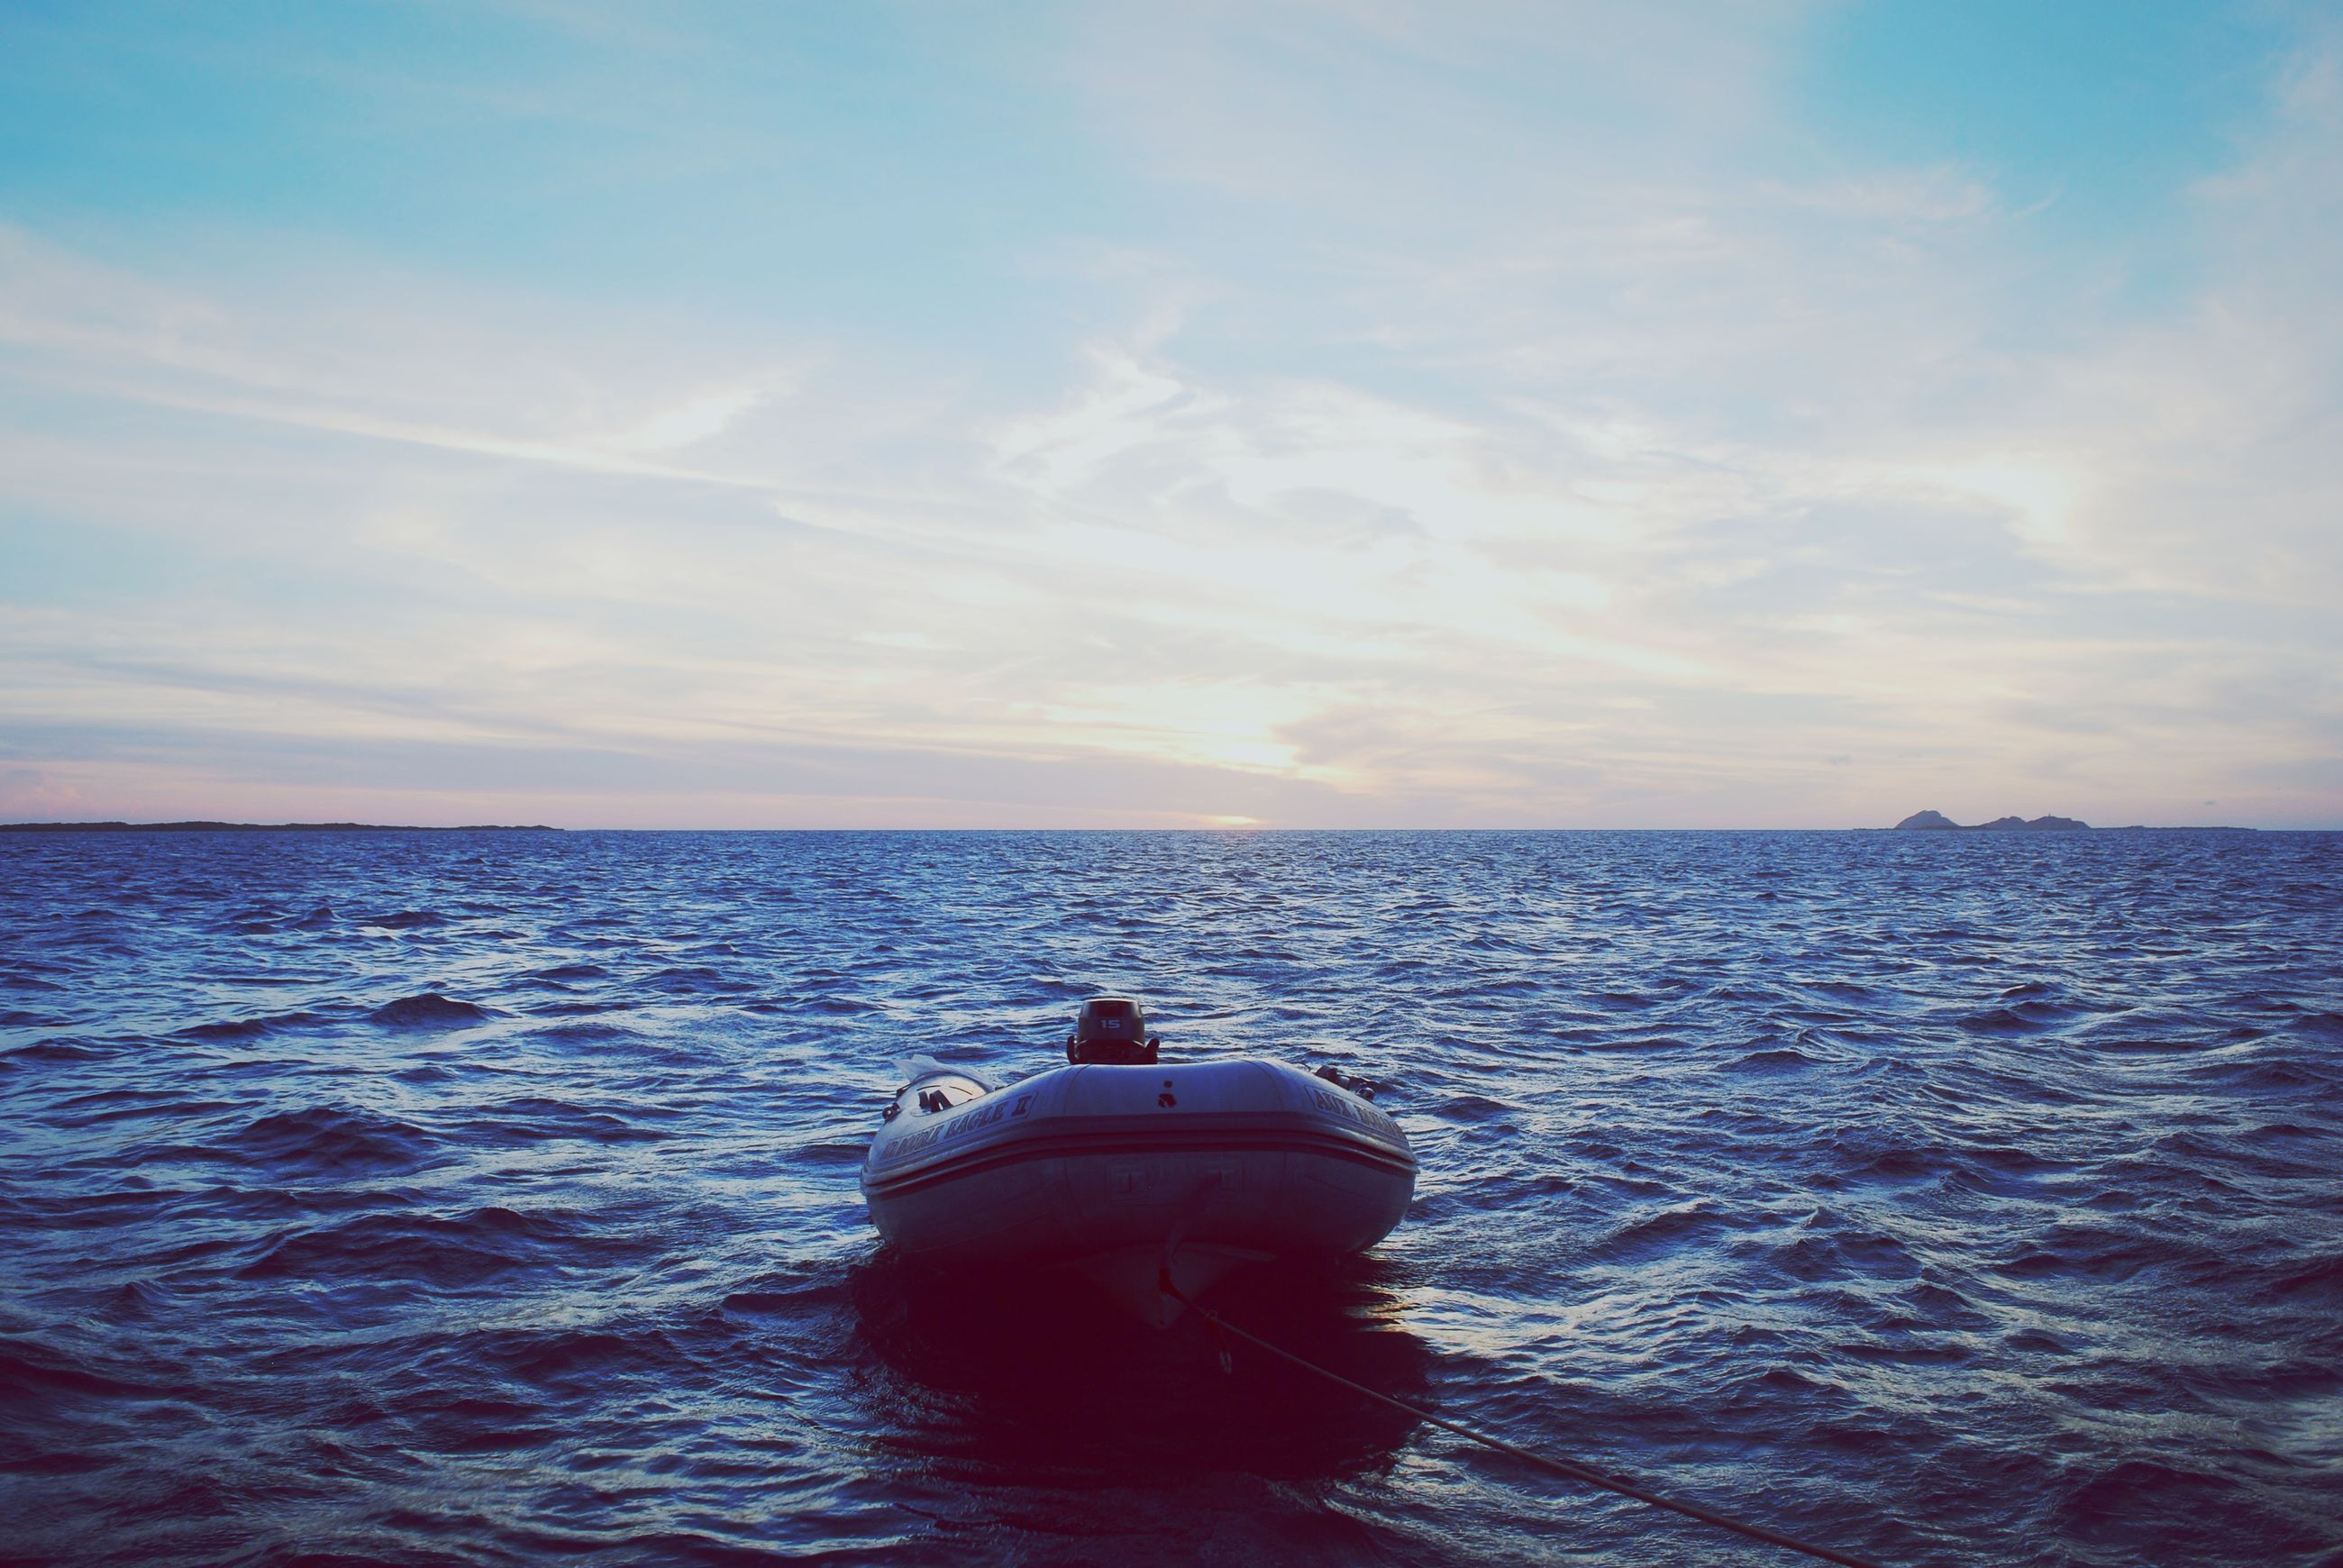 sea, water, sky, waterfront, horizon over water, outdoors, no people, nautical vessel, nature, beauty in nature, day